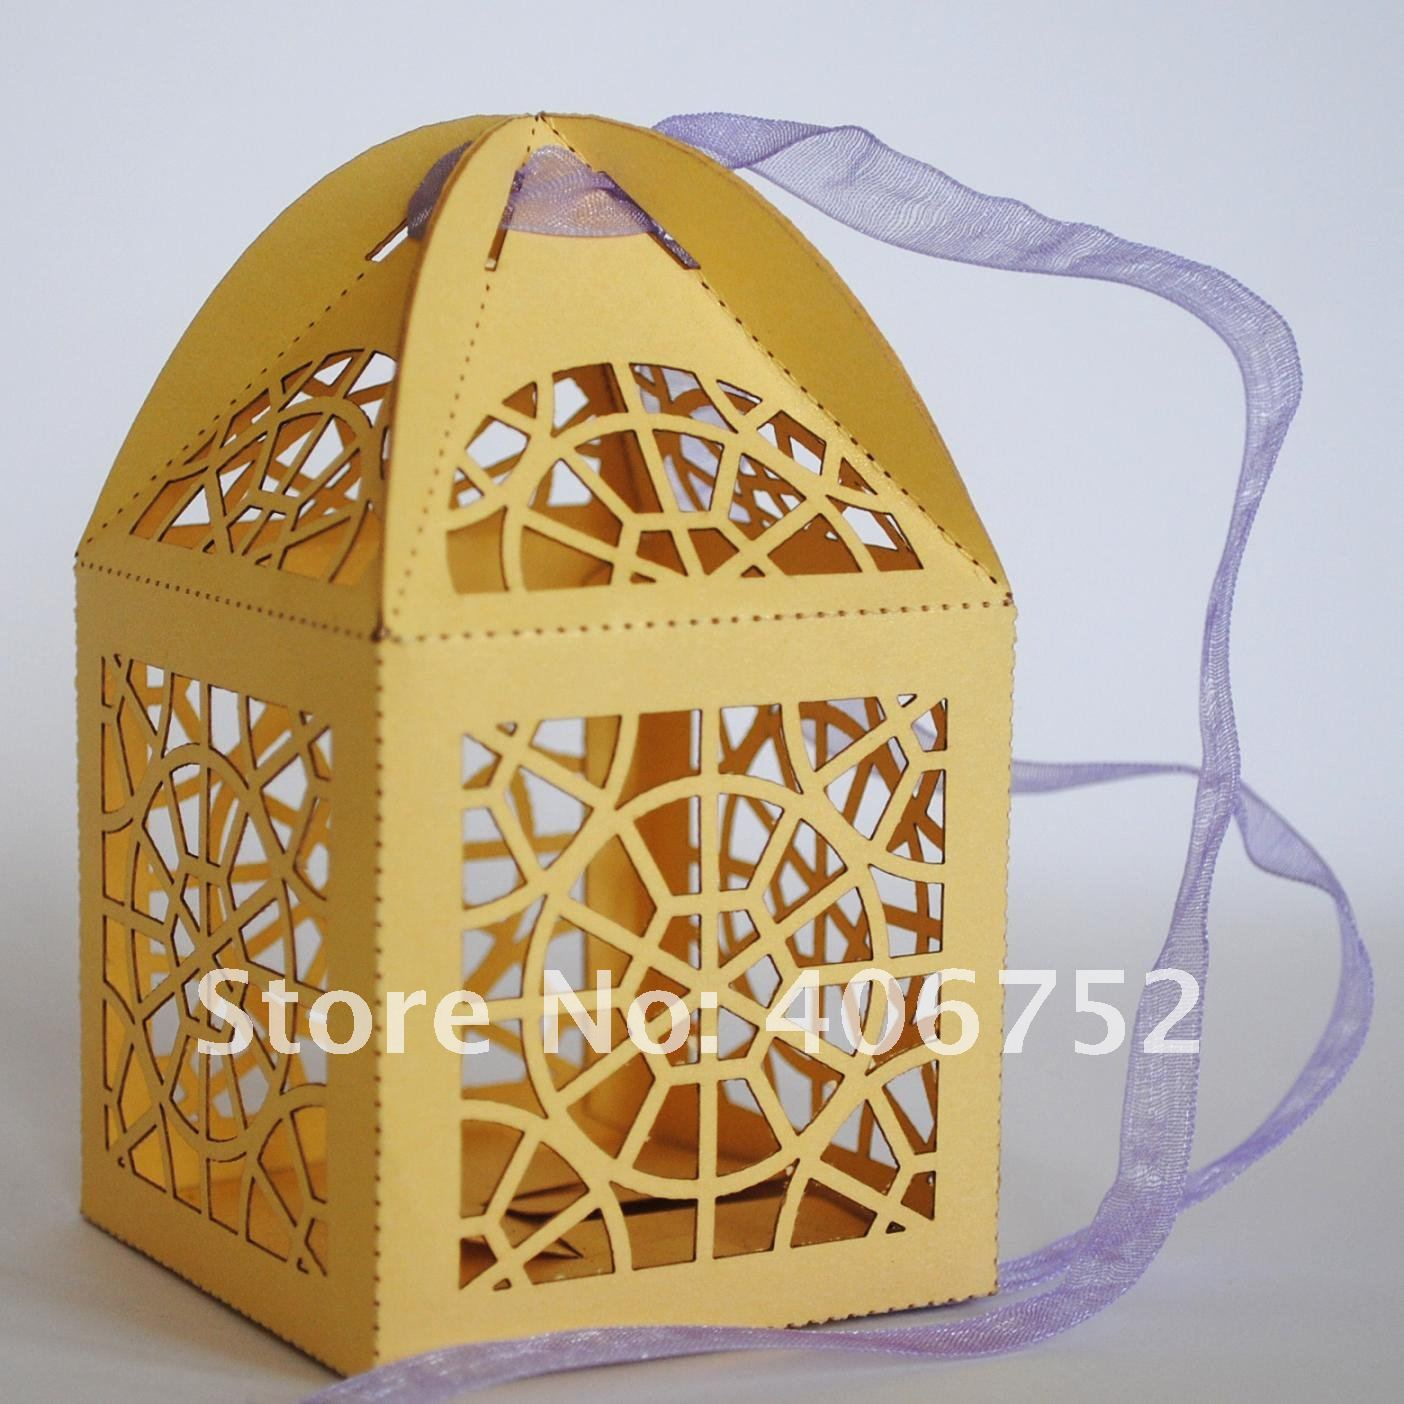 Laser Cut Custom Cupcake Boxes Wholesale Wedding Box Candy Filled Walmart Christmas Decorations In Party Favors From Home Garden On Aliexpress